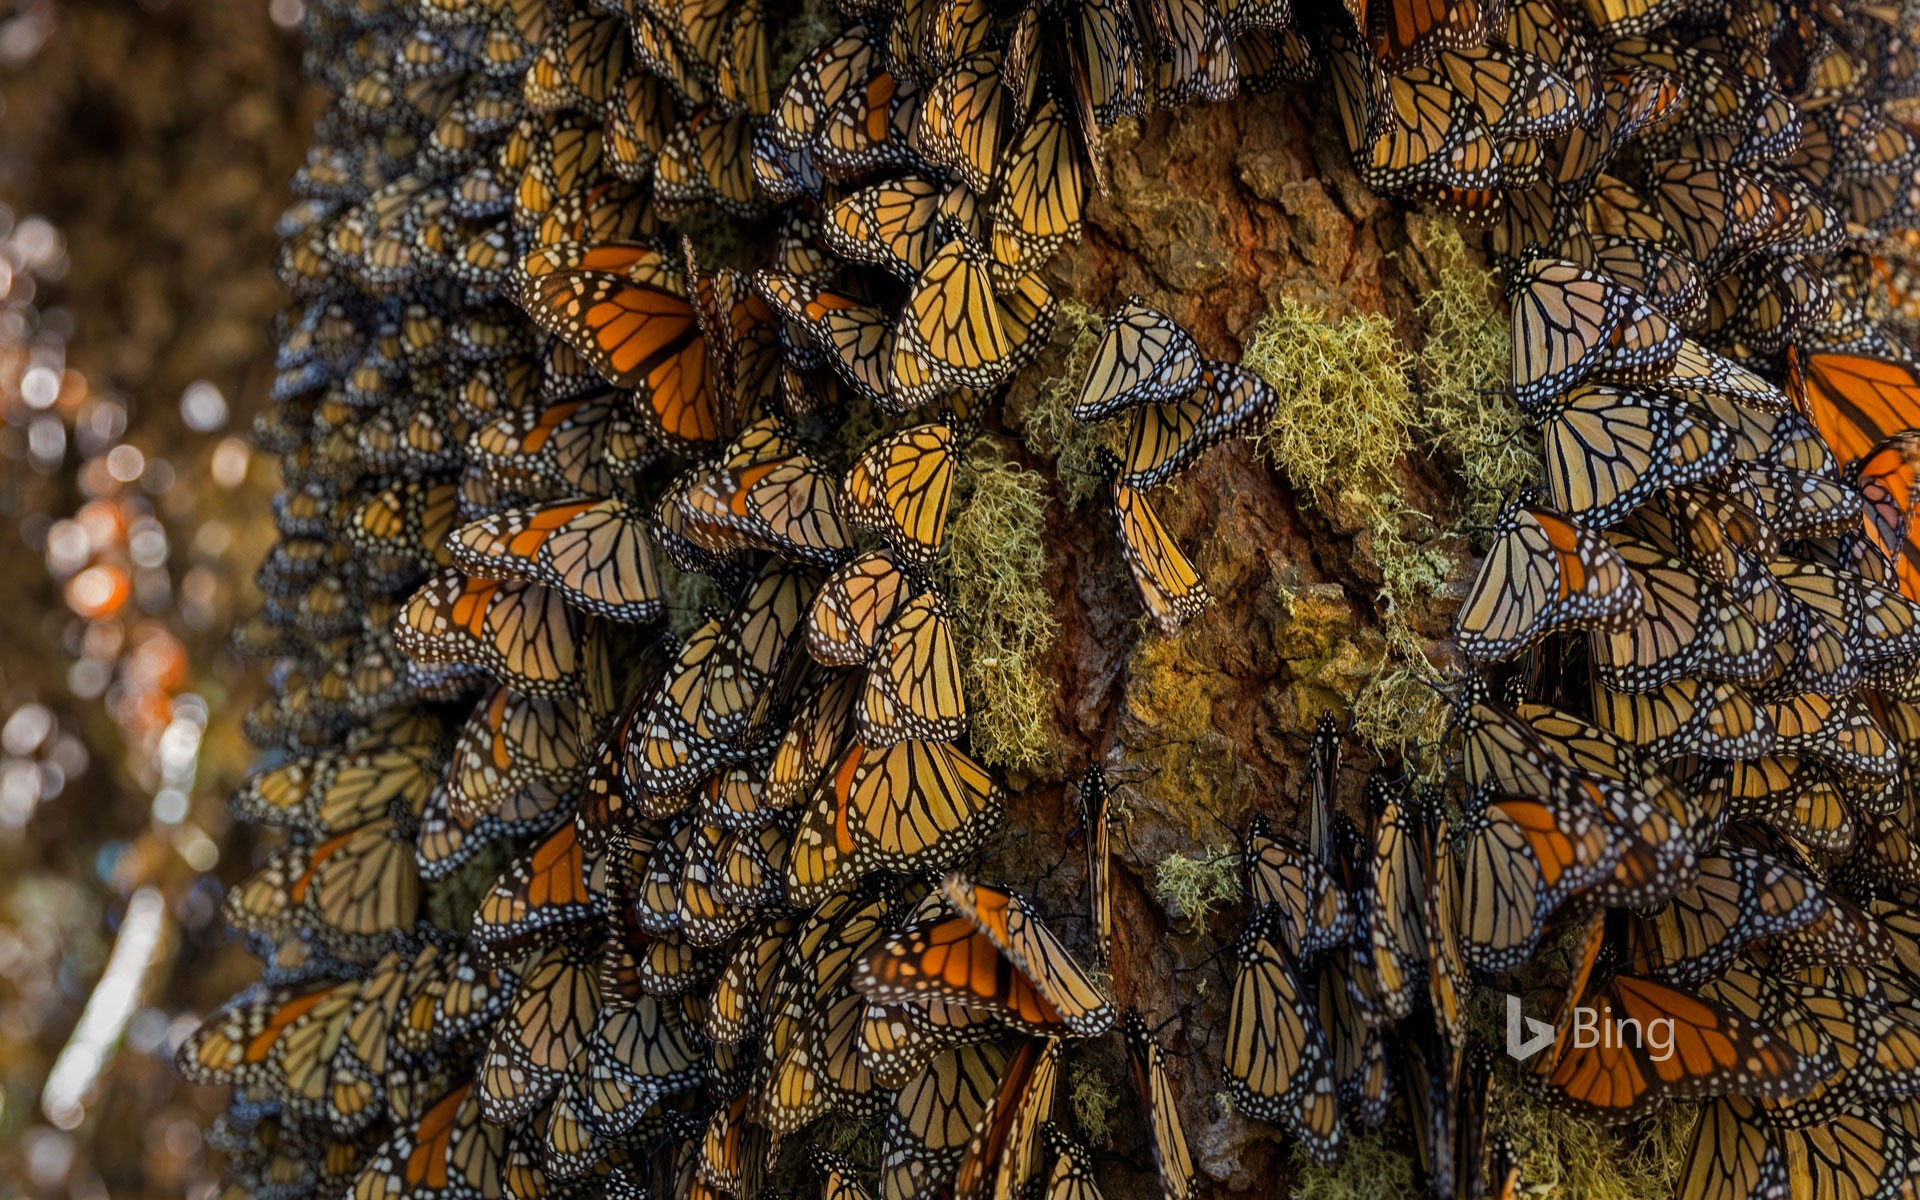 Monarch butterflies wintering in Michoacán, Mexico